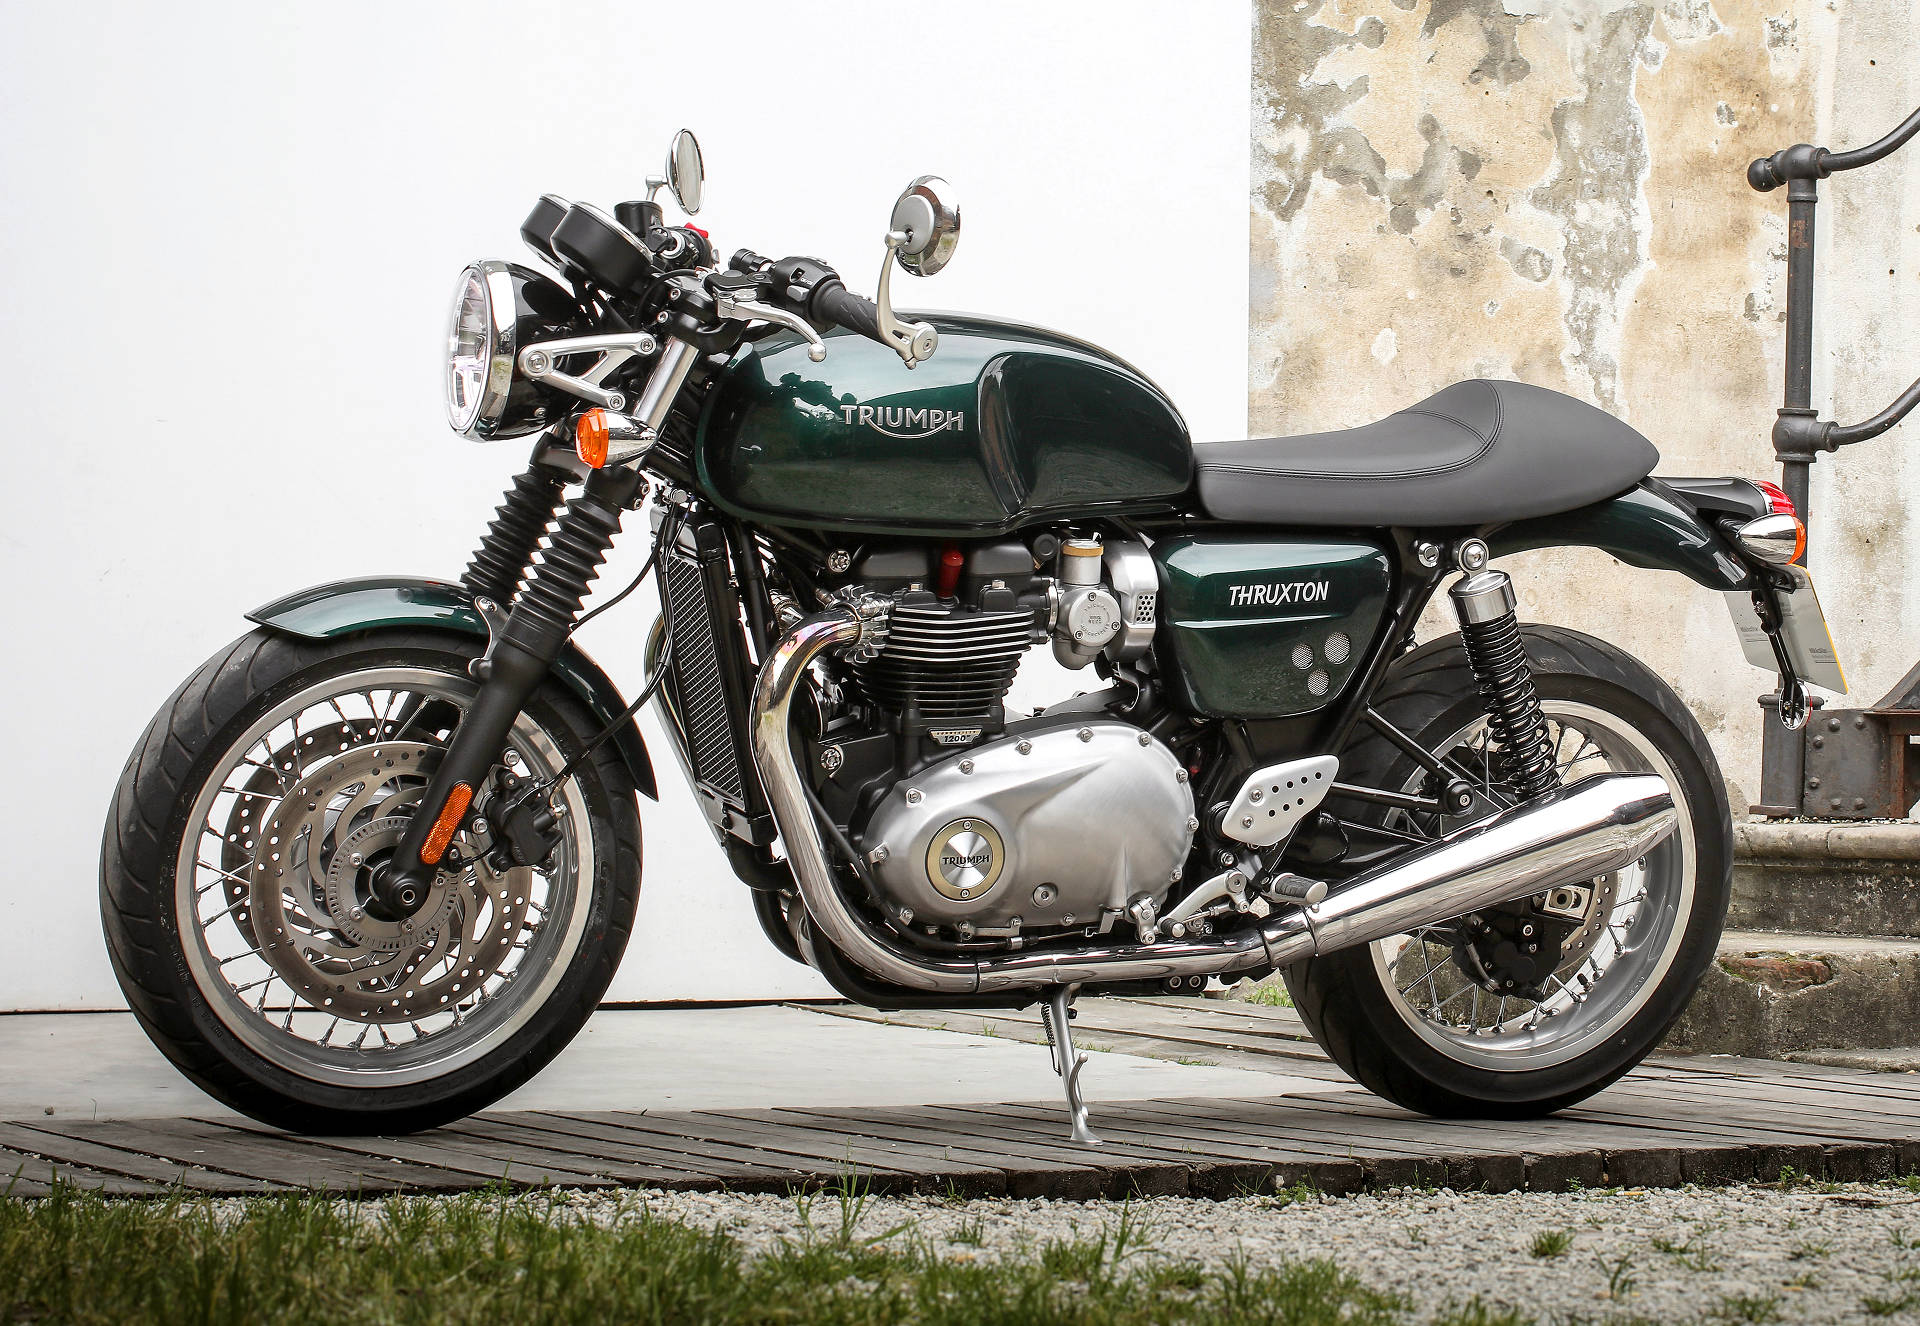 Triumph Finally Releases Full Specs for Thruxton and Thruxton R ...